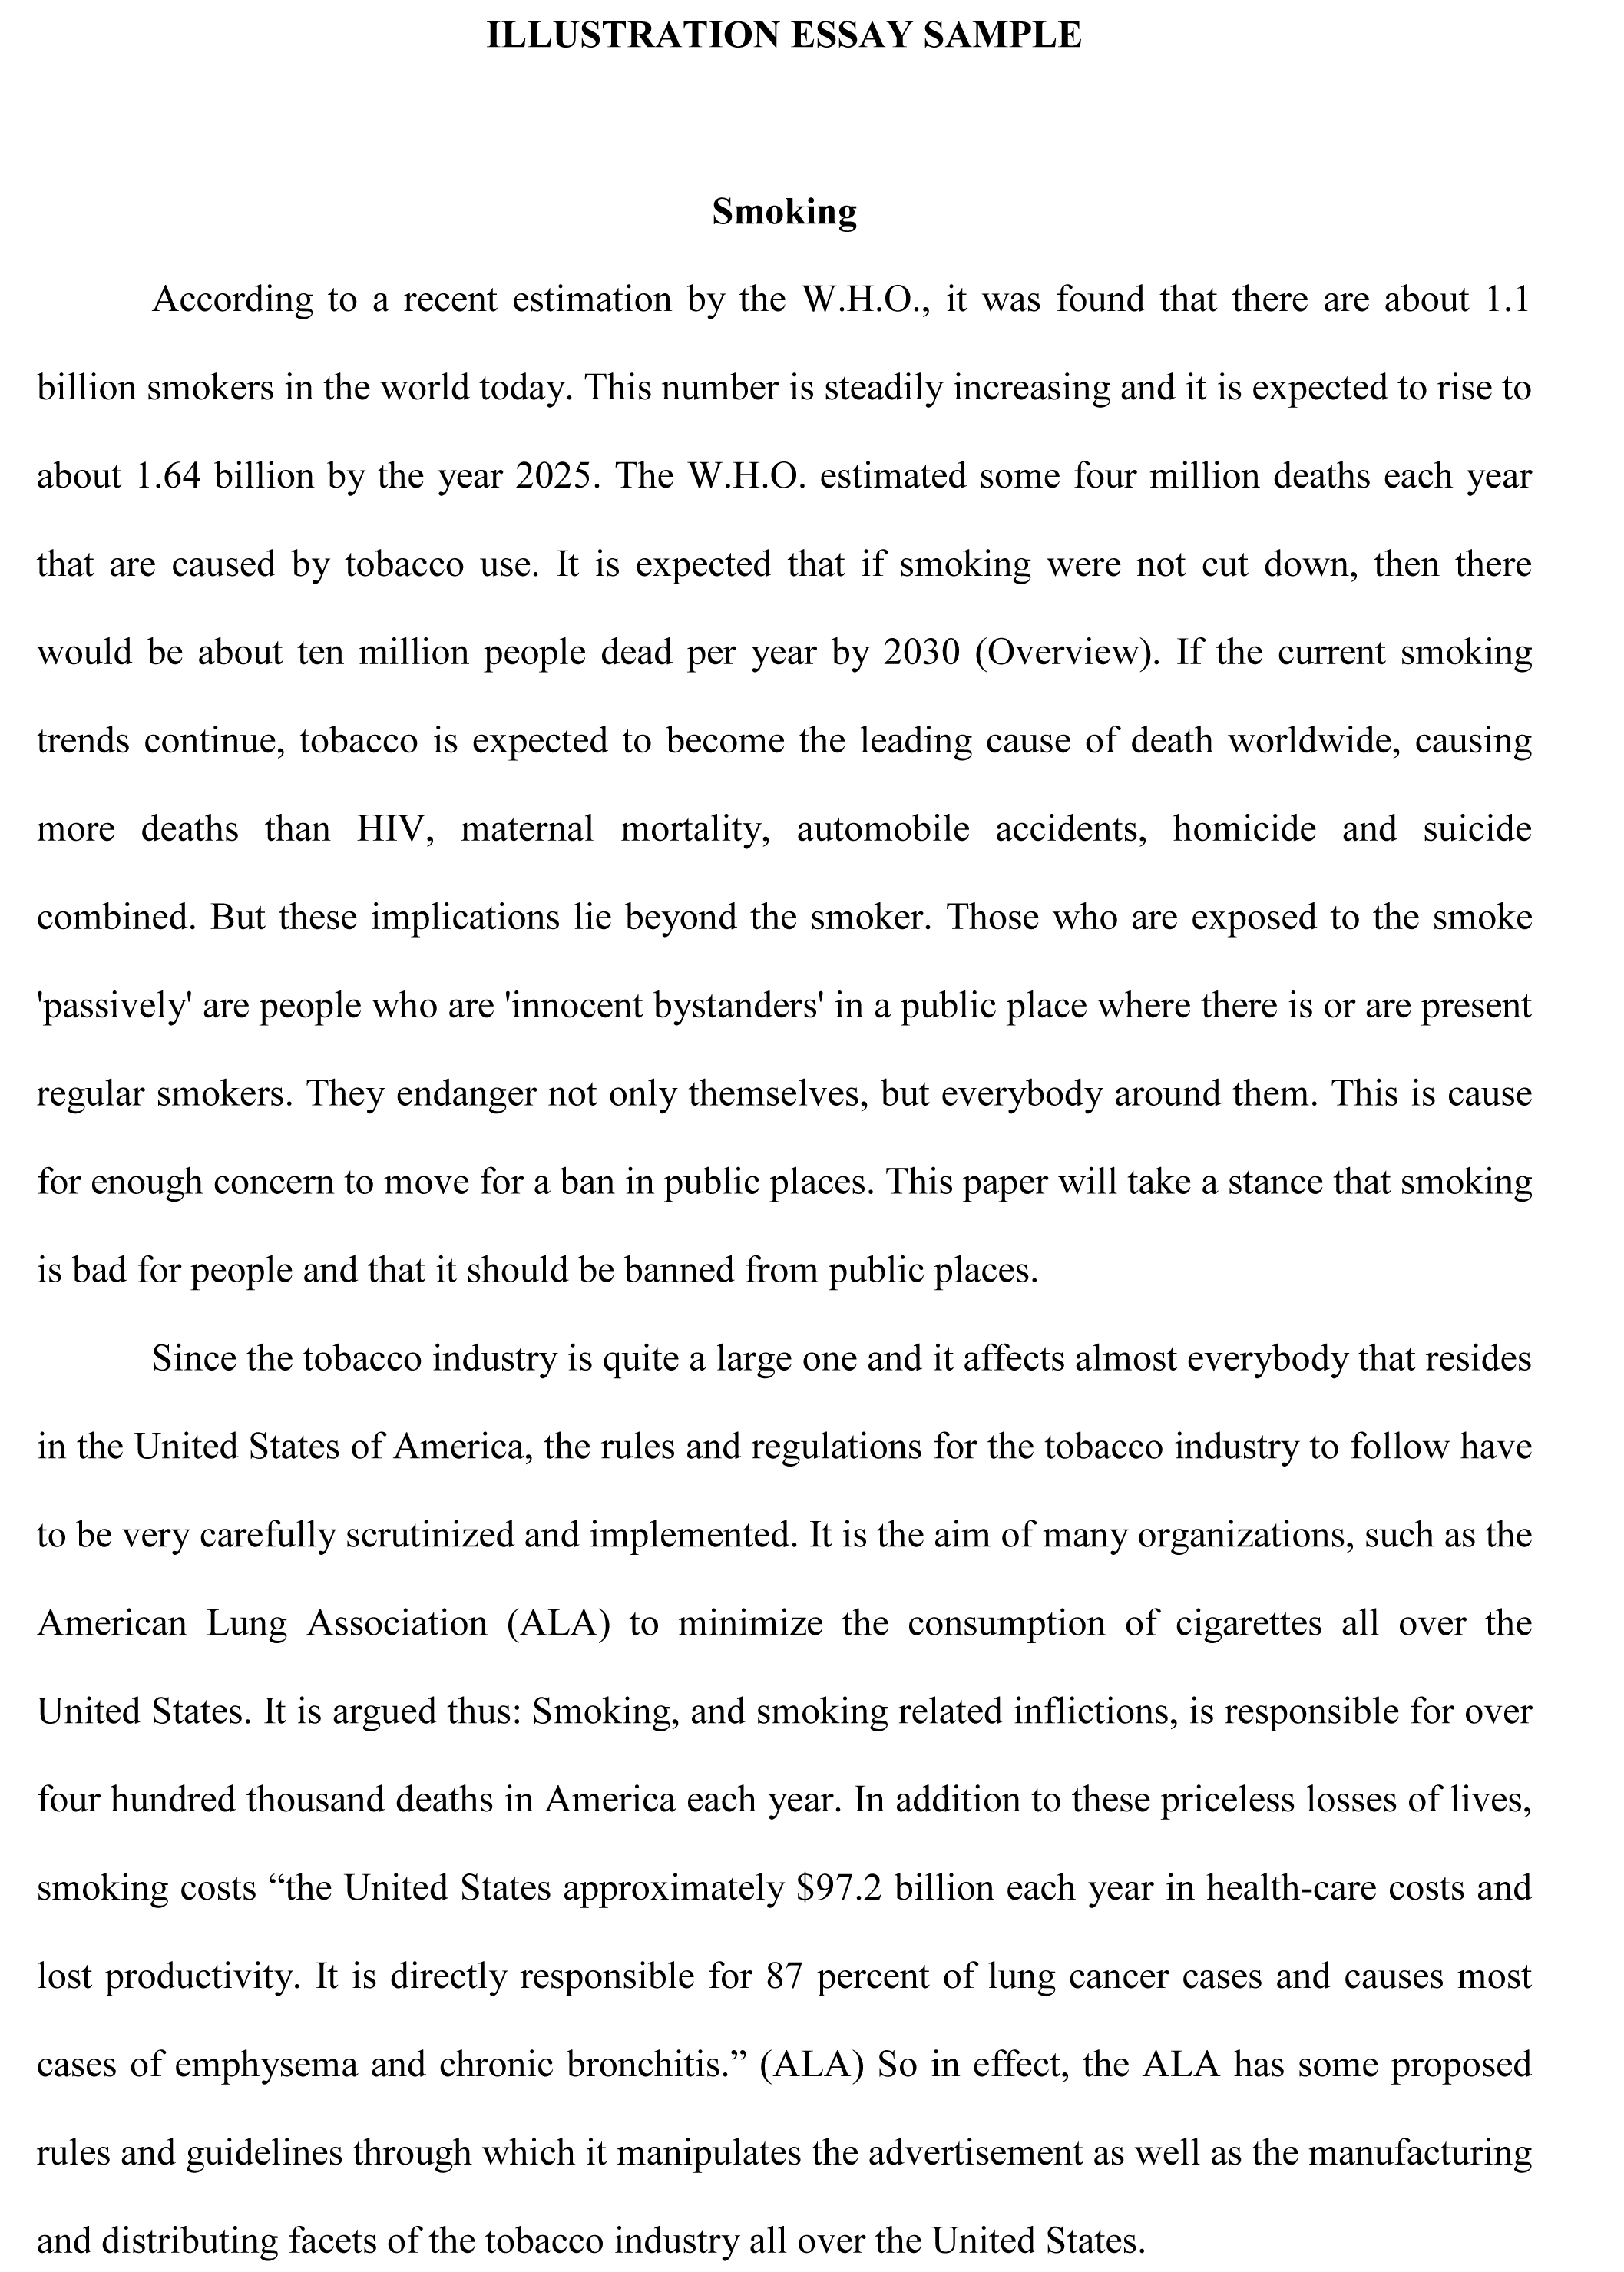 001 Illustration Essay Sample Example Fascinating Happiness My Idea Of Writing Short On In Hindi Topics Full